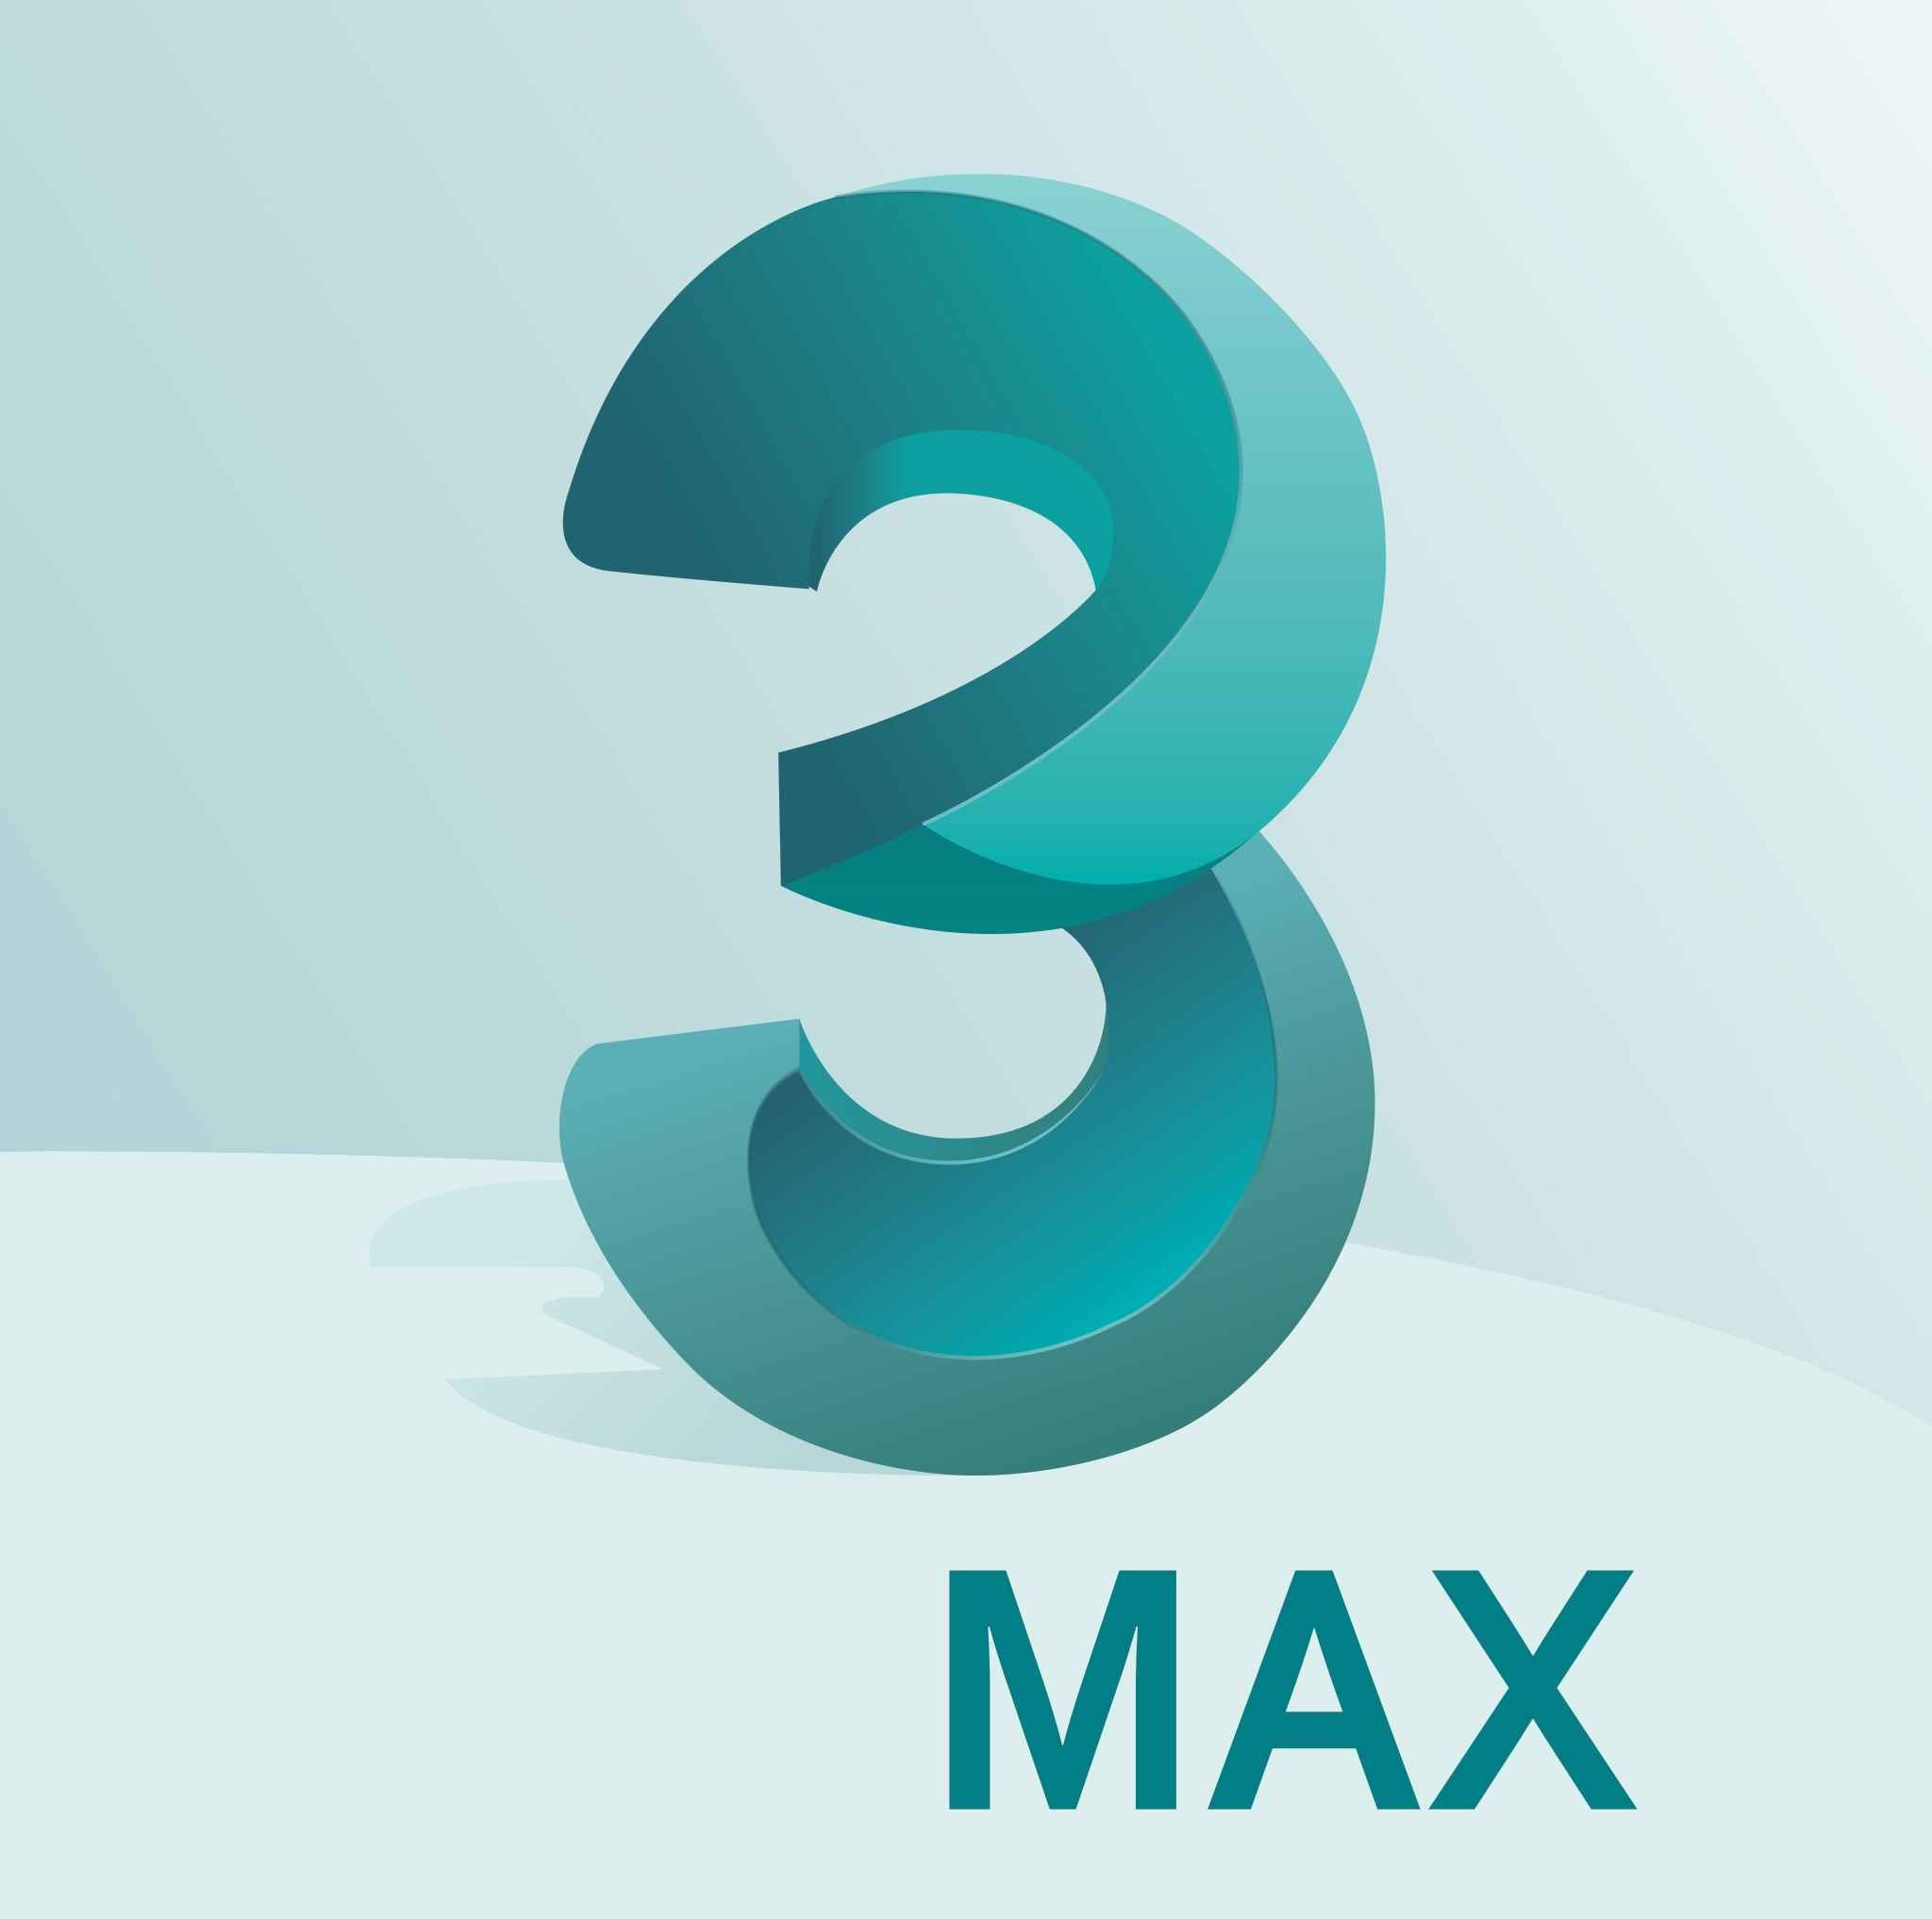 3DS Max Logo (Autodesk) png